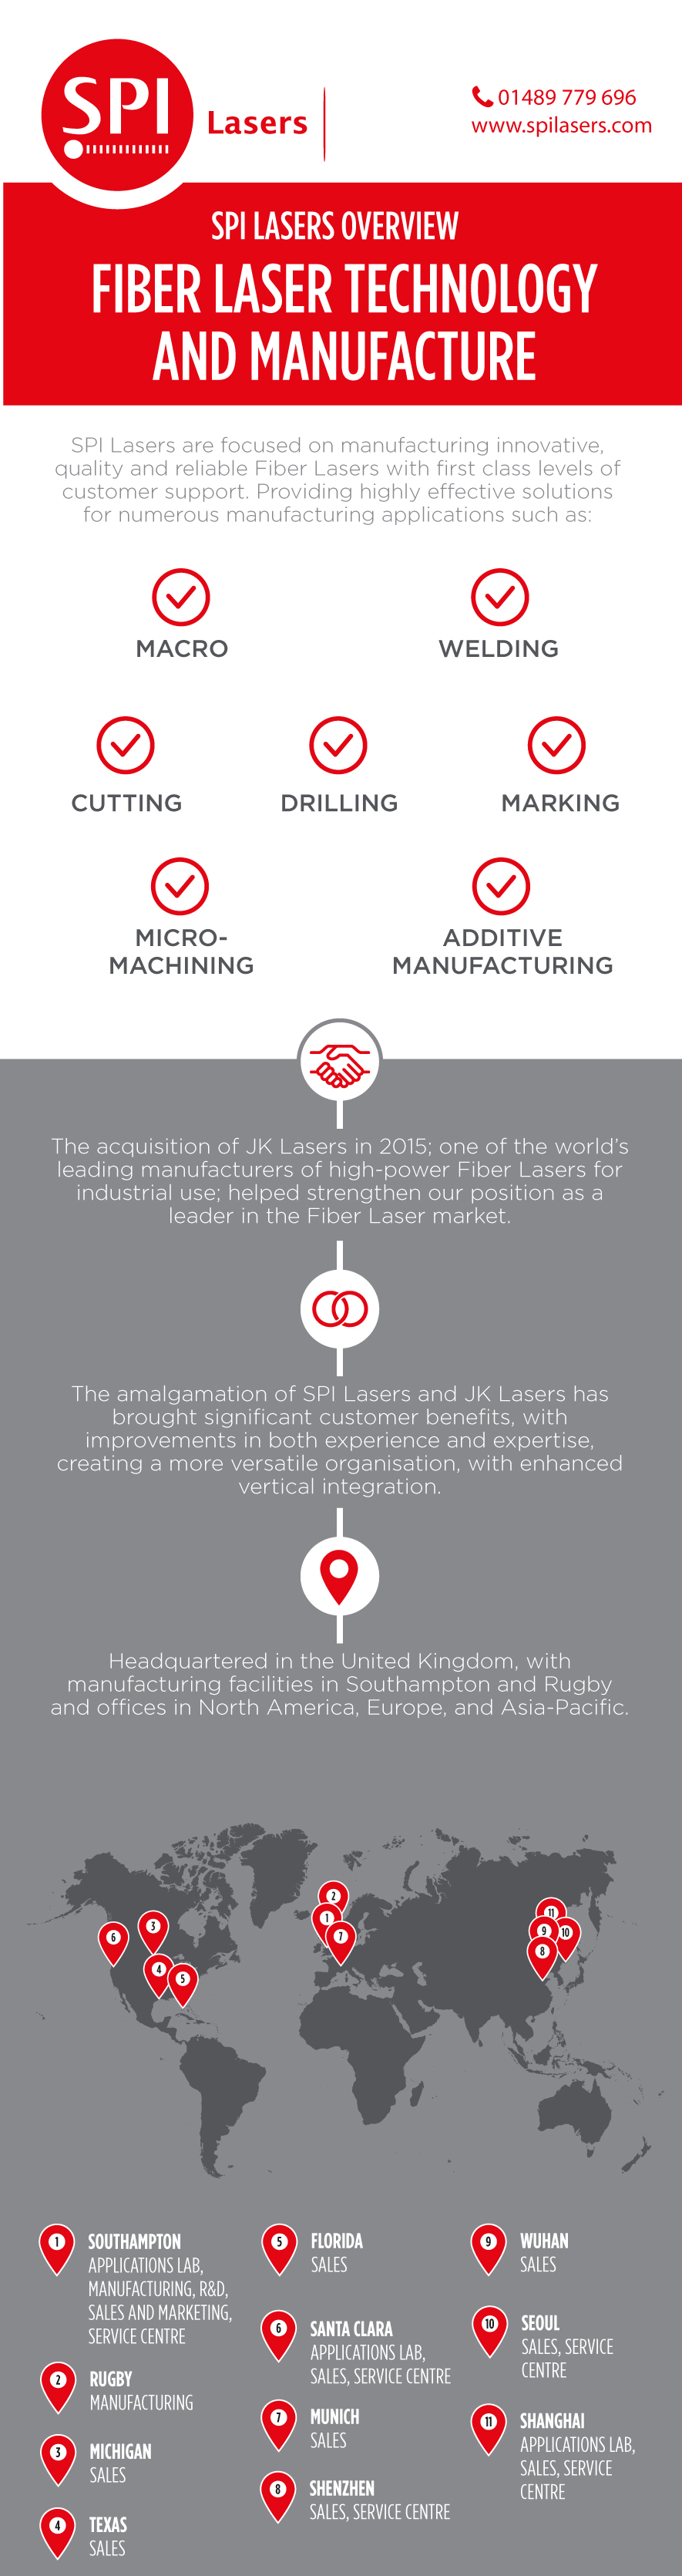 SPI Lasers Overview Infographic - Fiber Laser Technology and Manufacture - thumb